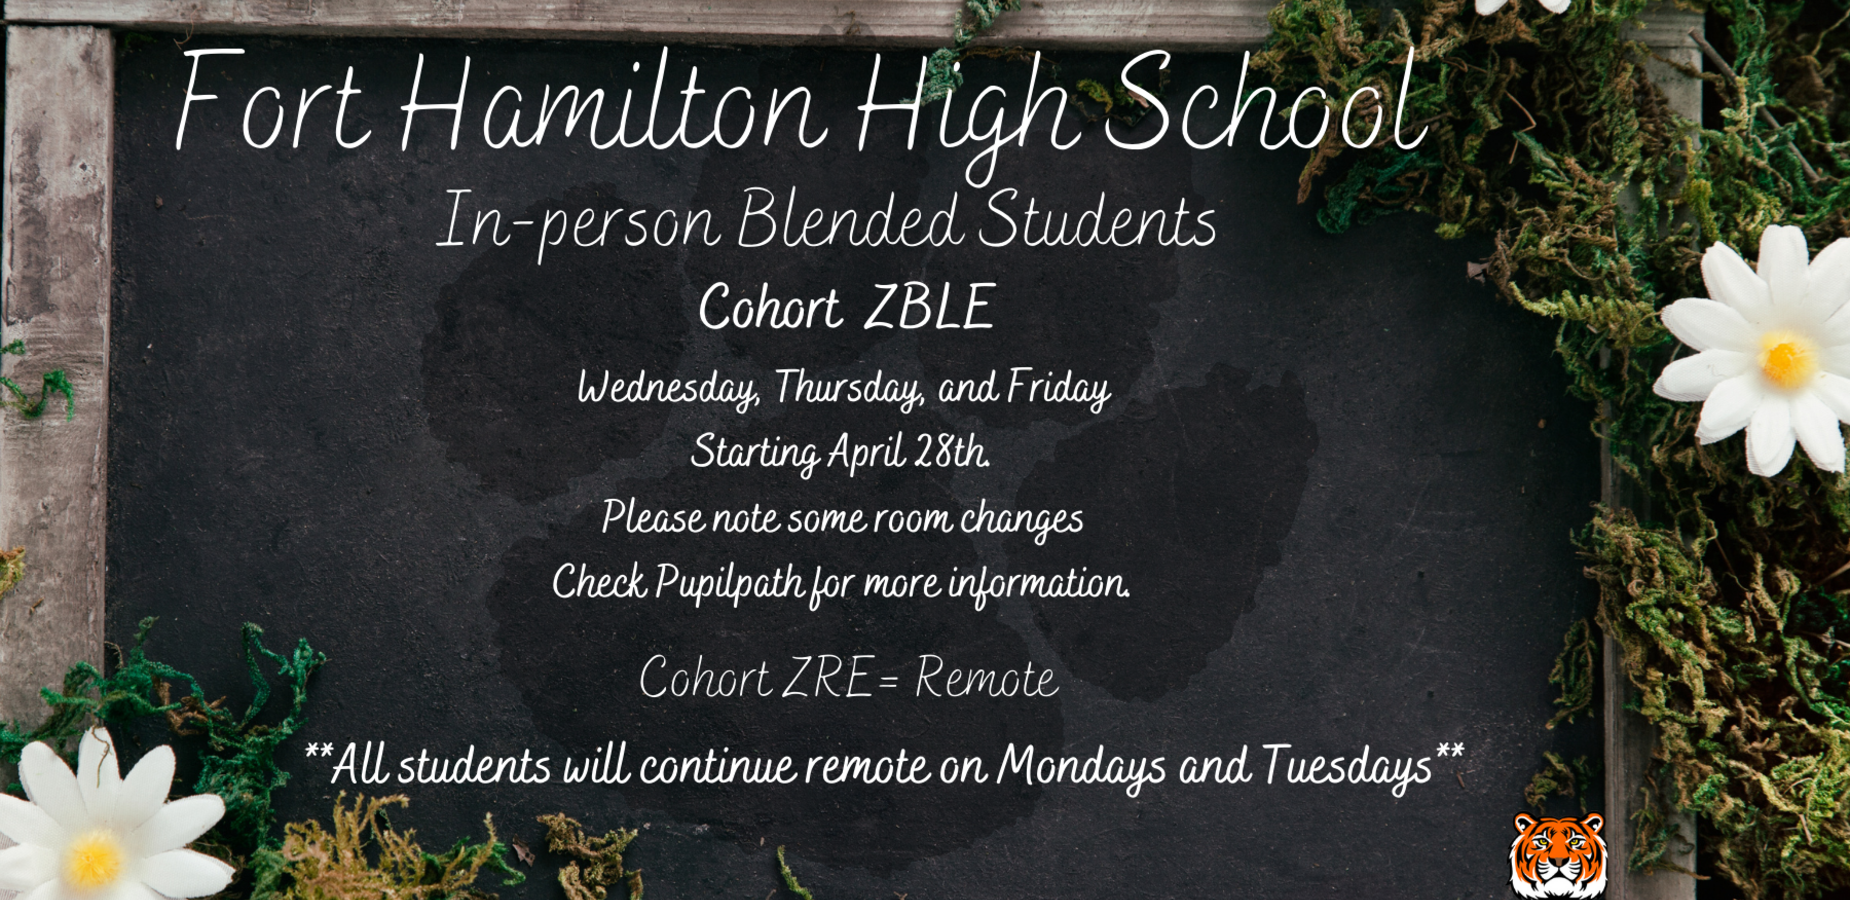 Fort Hamilton High School In-Person Blended Students. Cohort ZBLE Wednesday, Thursday, and Friday, starting April 28, 2021. Some room assignments have changed, check pupil path for more information. Cohort ZRE = Remote. All students will continue to remote on Mondays and Tuesdays. Background is a chalkboard surrounded by daisies